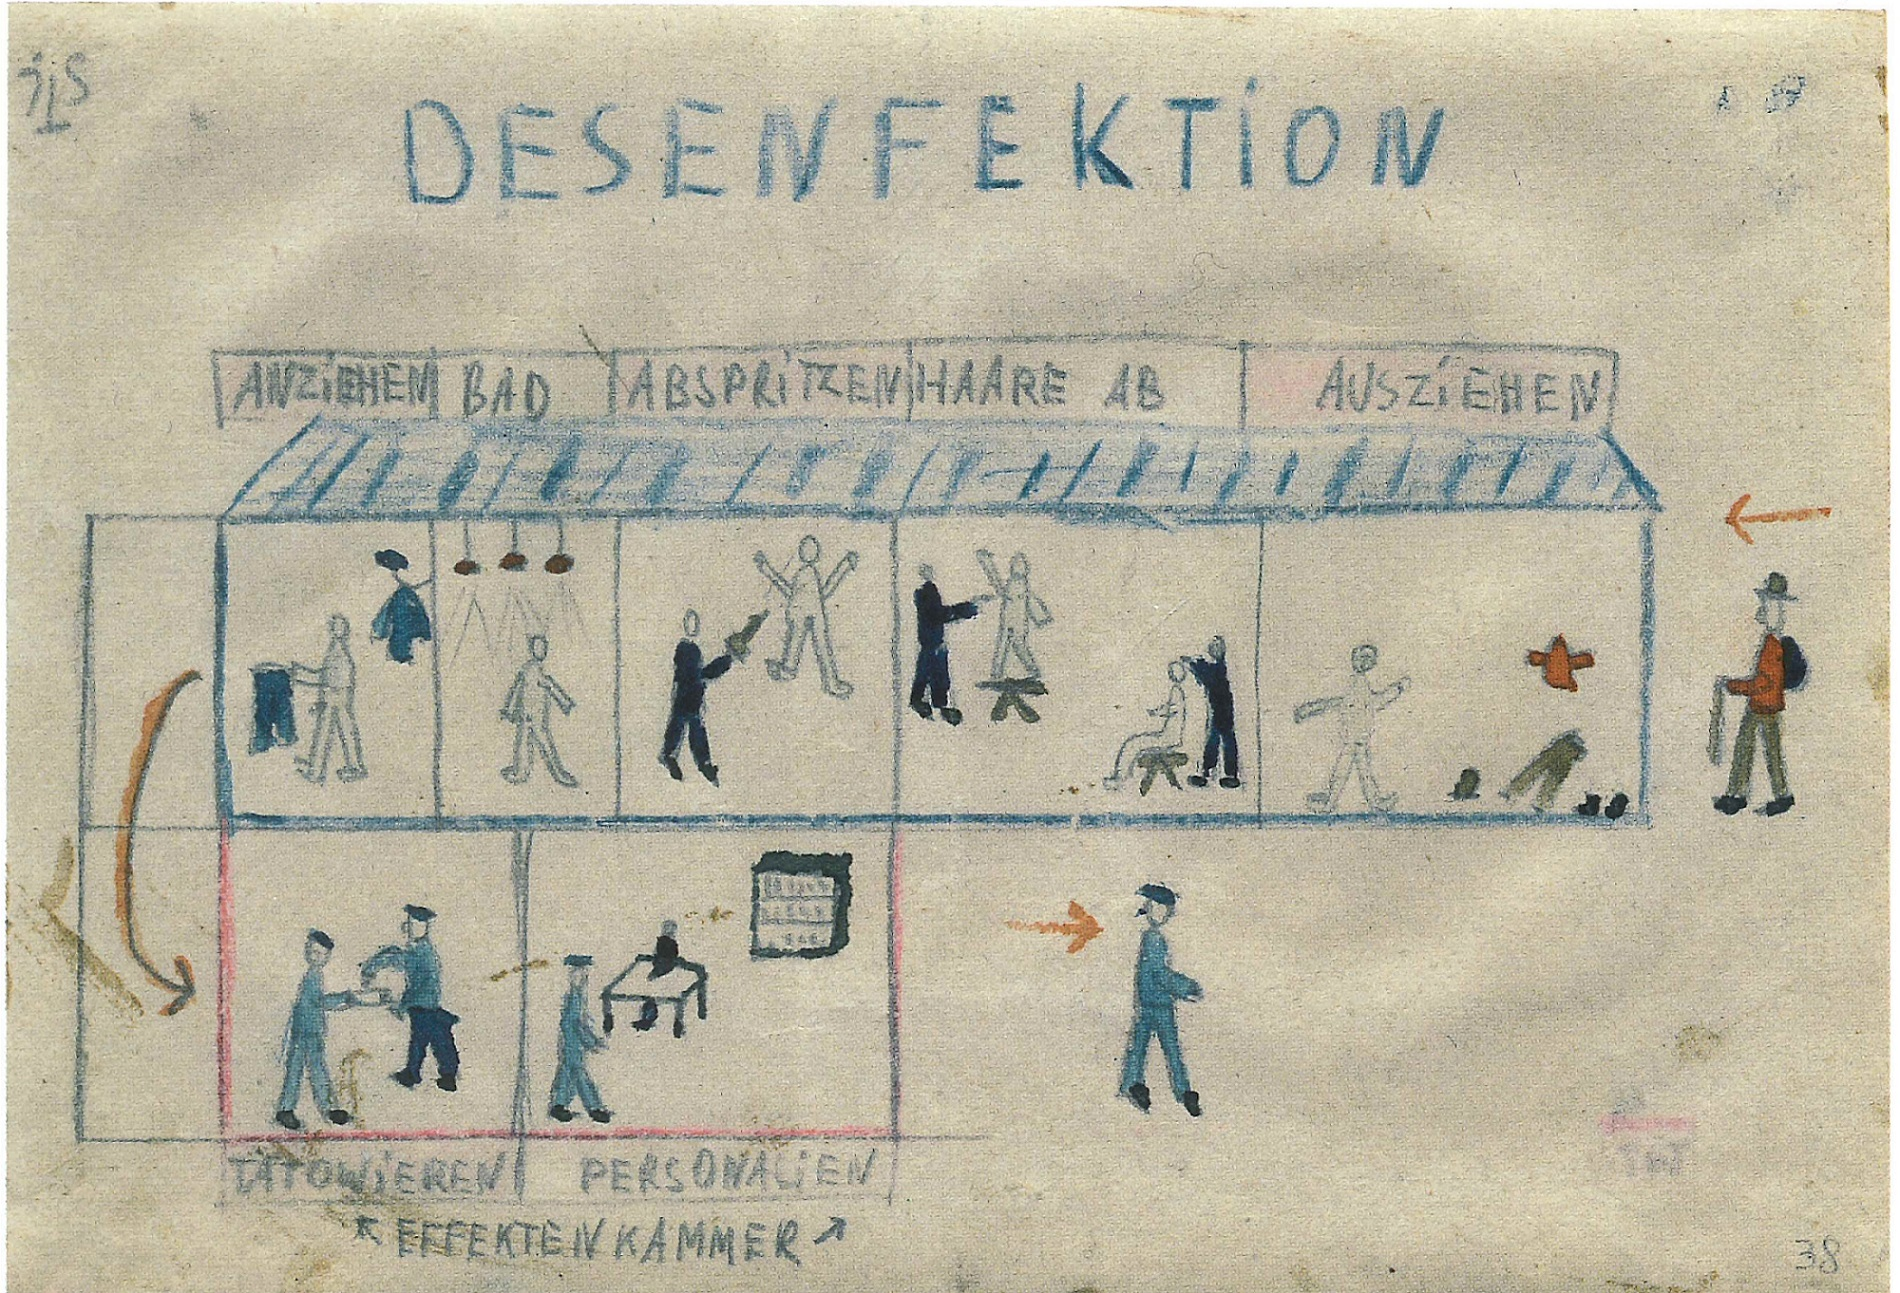 Désinfection- Thomas Geve